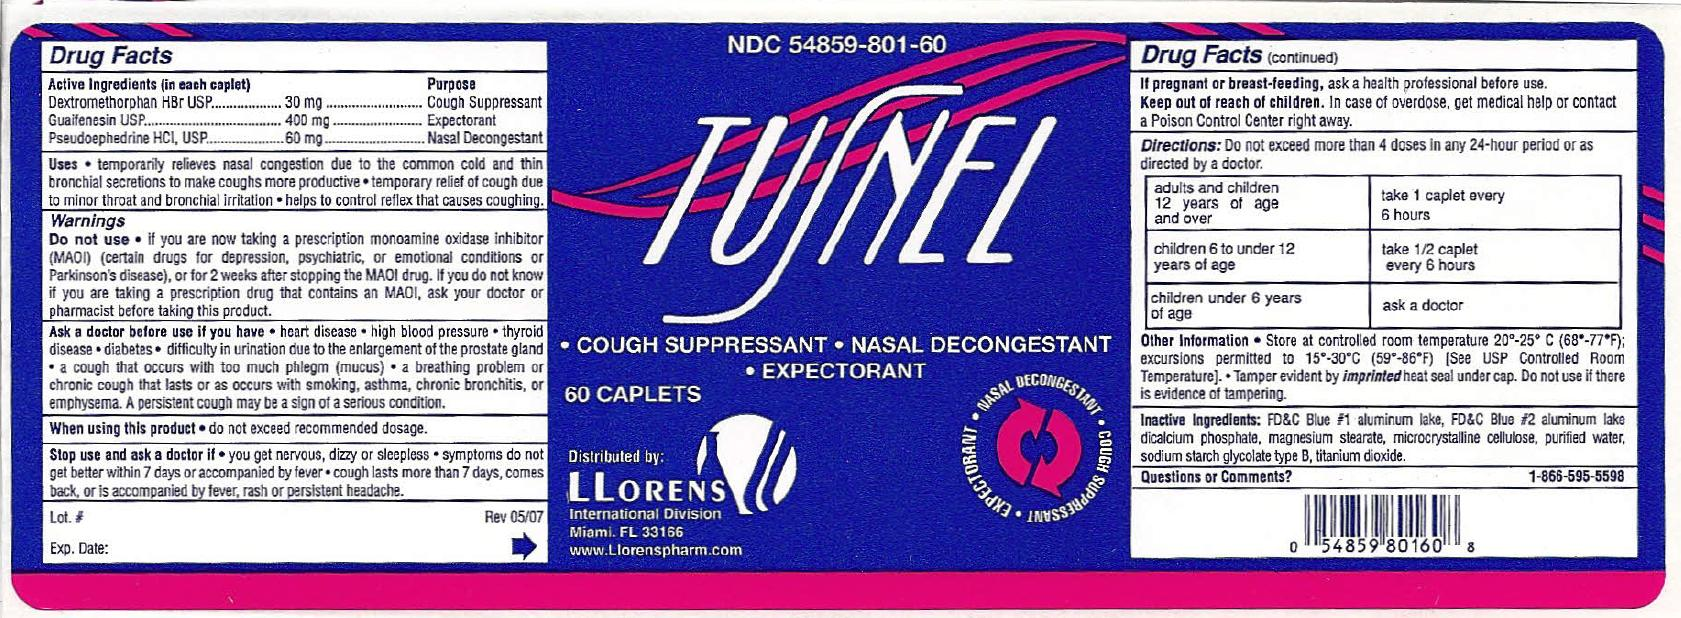 Tusnel Information Side Effects Warnings And Recalls